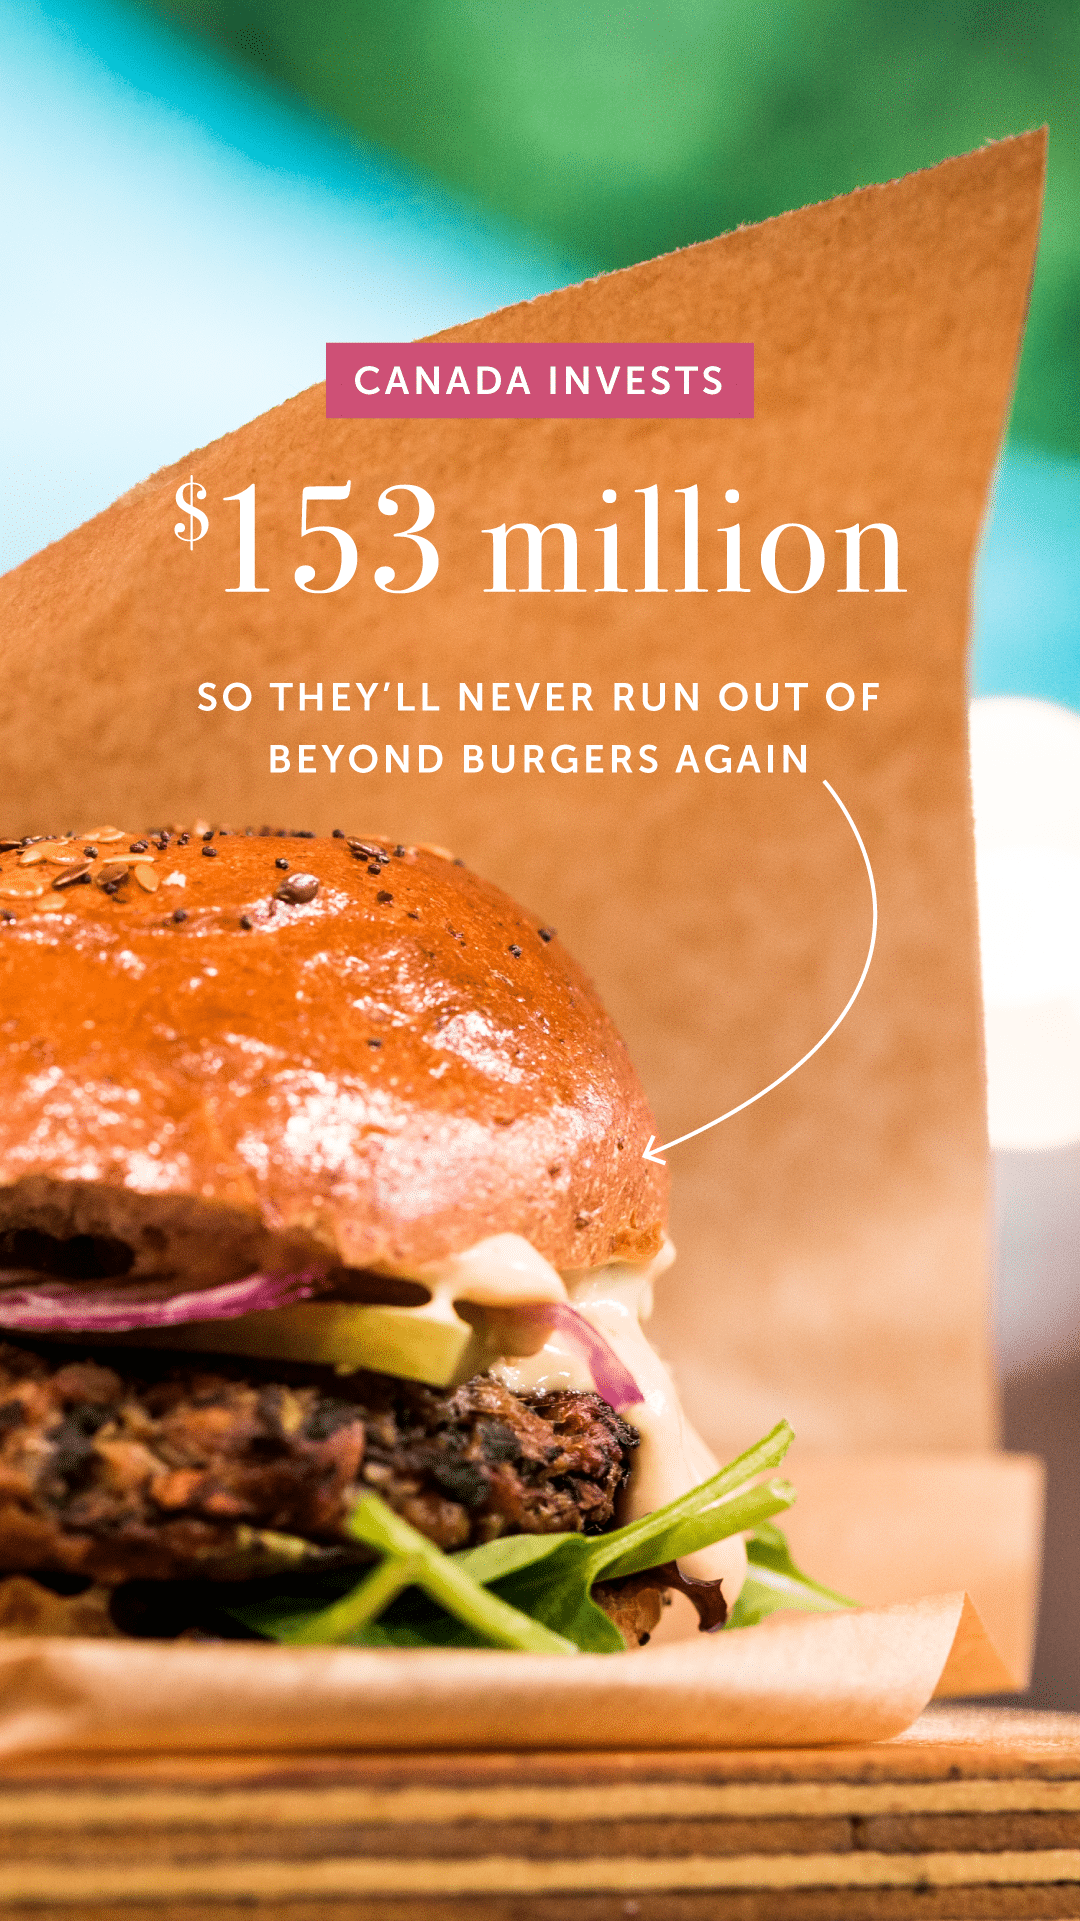 Canada Invests $153 Million So They'll Never Run Out of Beyond Burgers Again